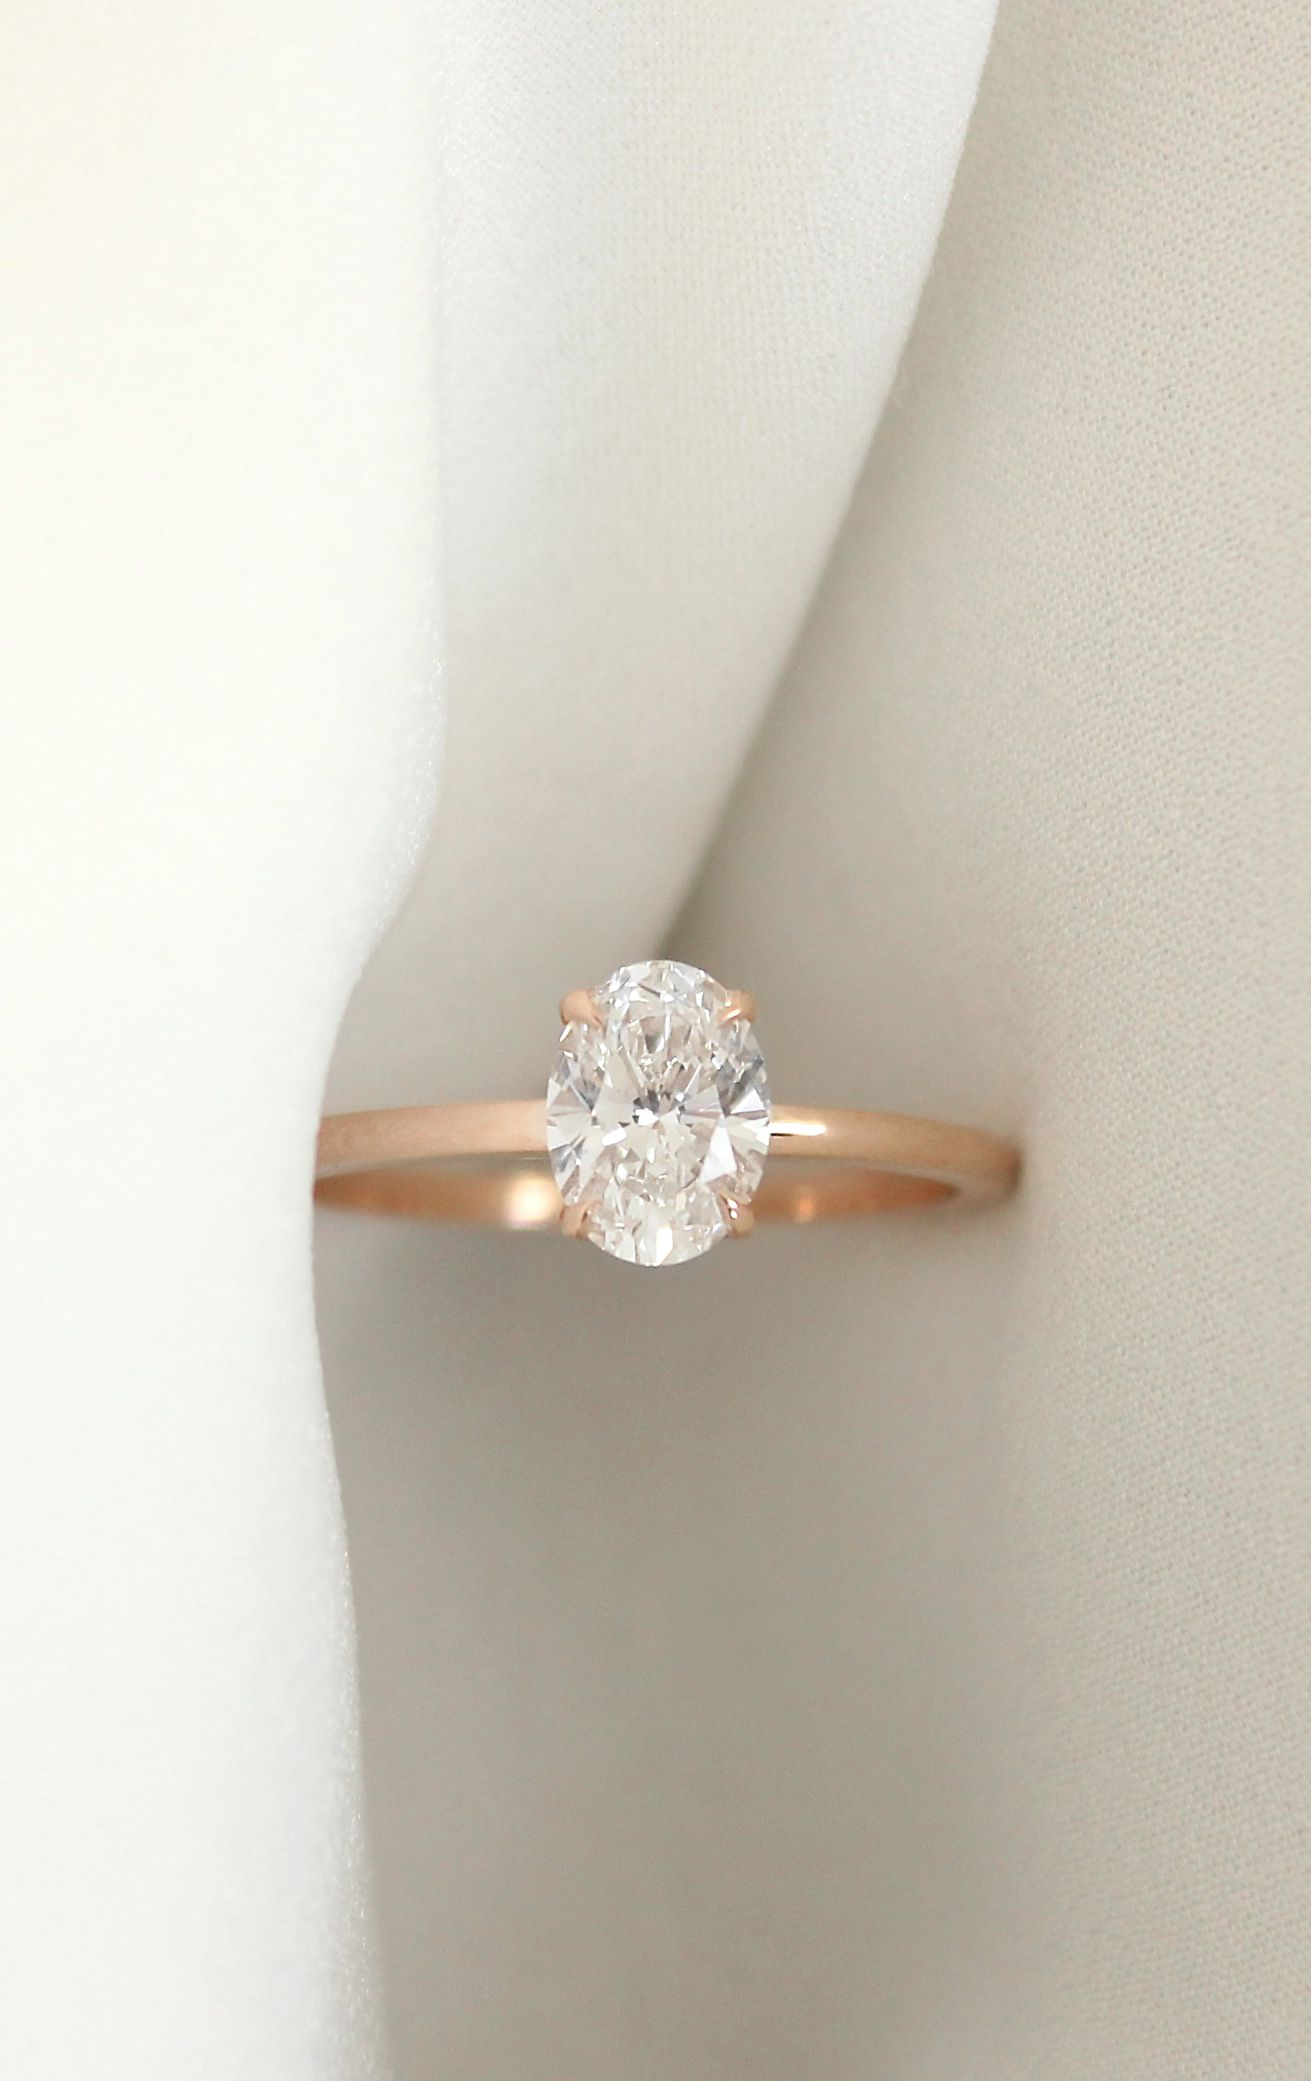 Vow: The Modern Solitaire Diamond Engagement Ring Thin Band, Conflictfree  Diamond, Free Home Tryon  Vow  Pinterest  Solitaire Diamond Engagement  Ring